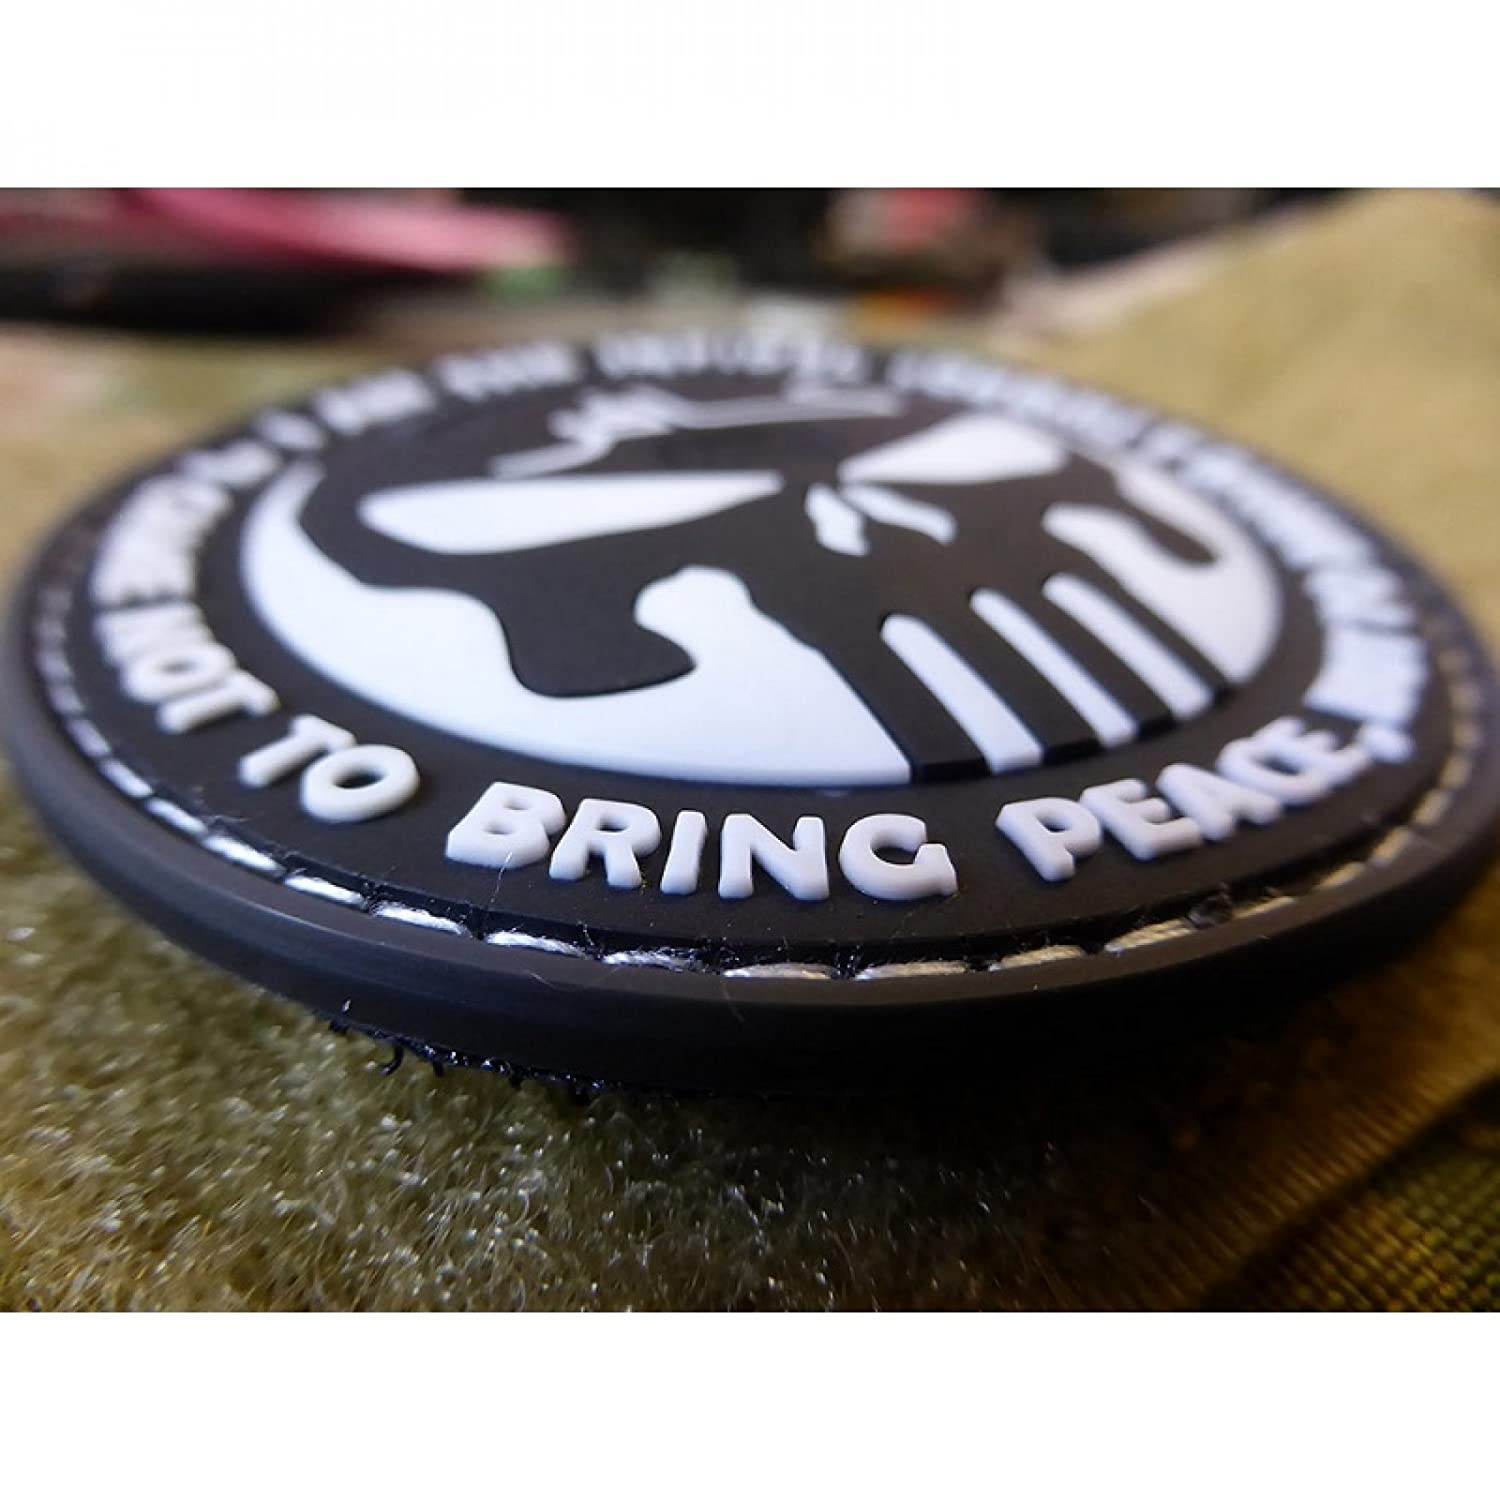 3D Rubber Patch SWAT Jackets To Go JTG The Infidel Punisher Patch